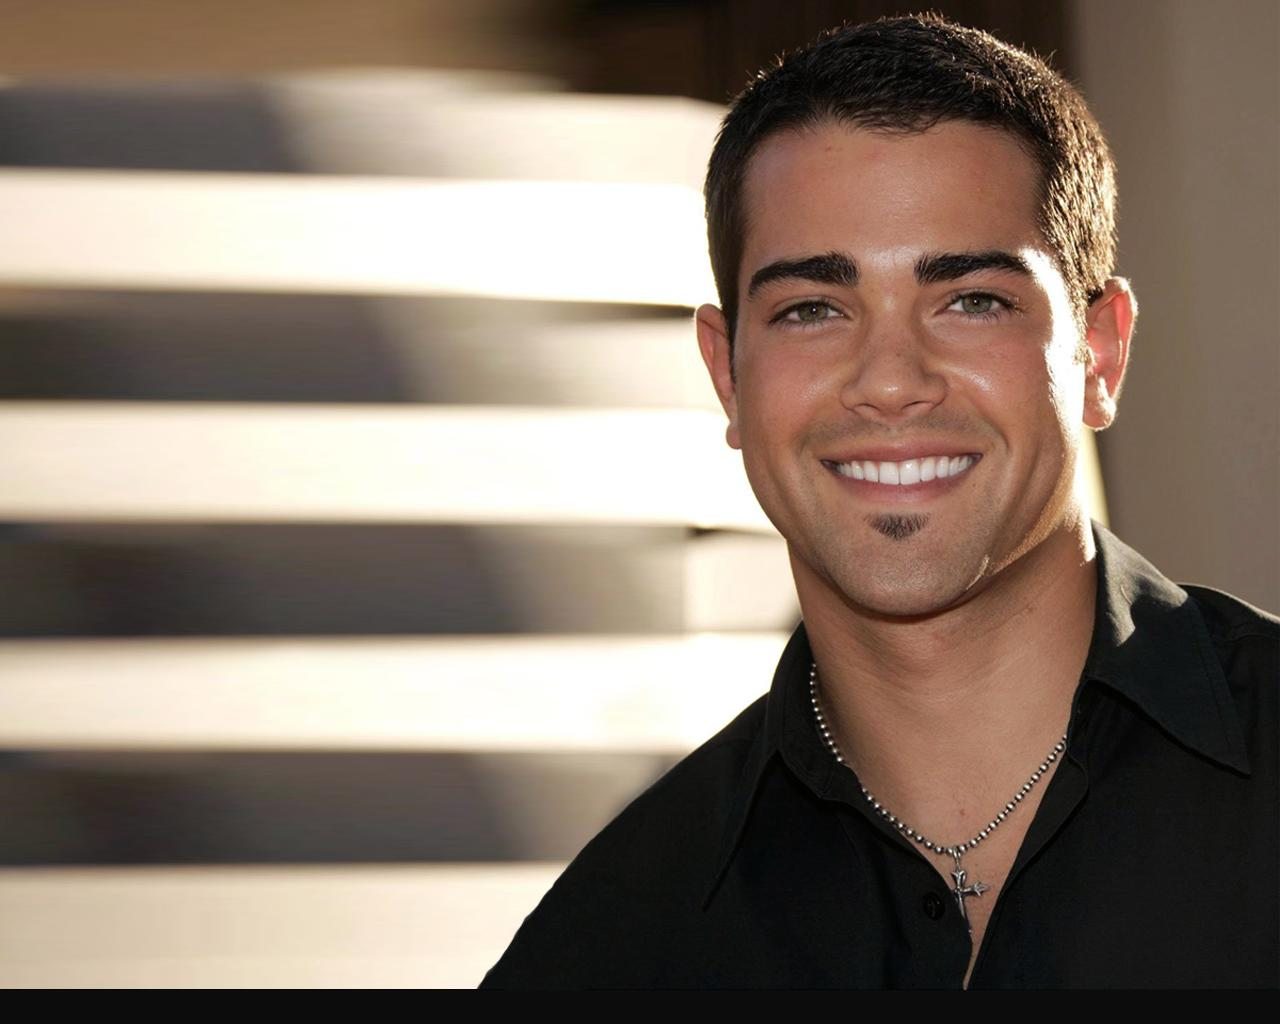 jesse metcalfe images jesse metcalfe hd wallpaper and